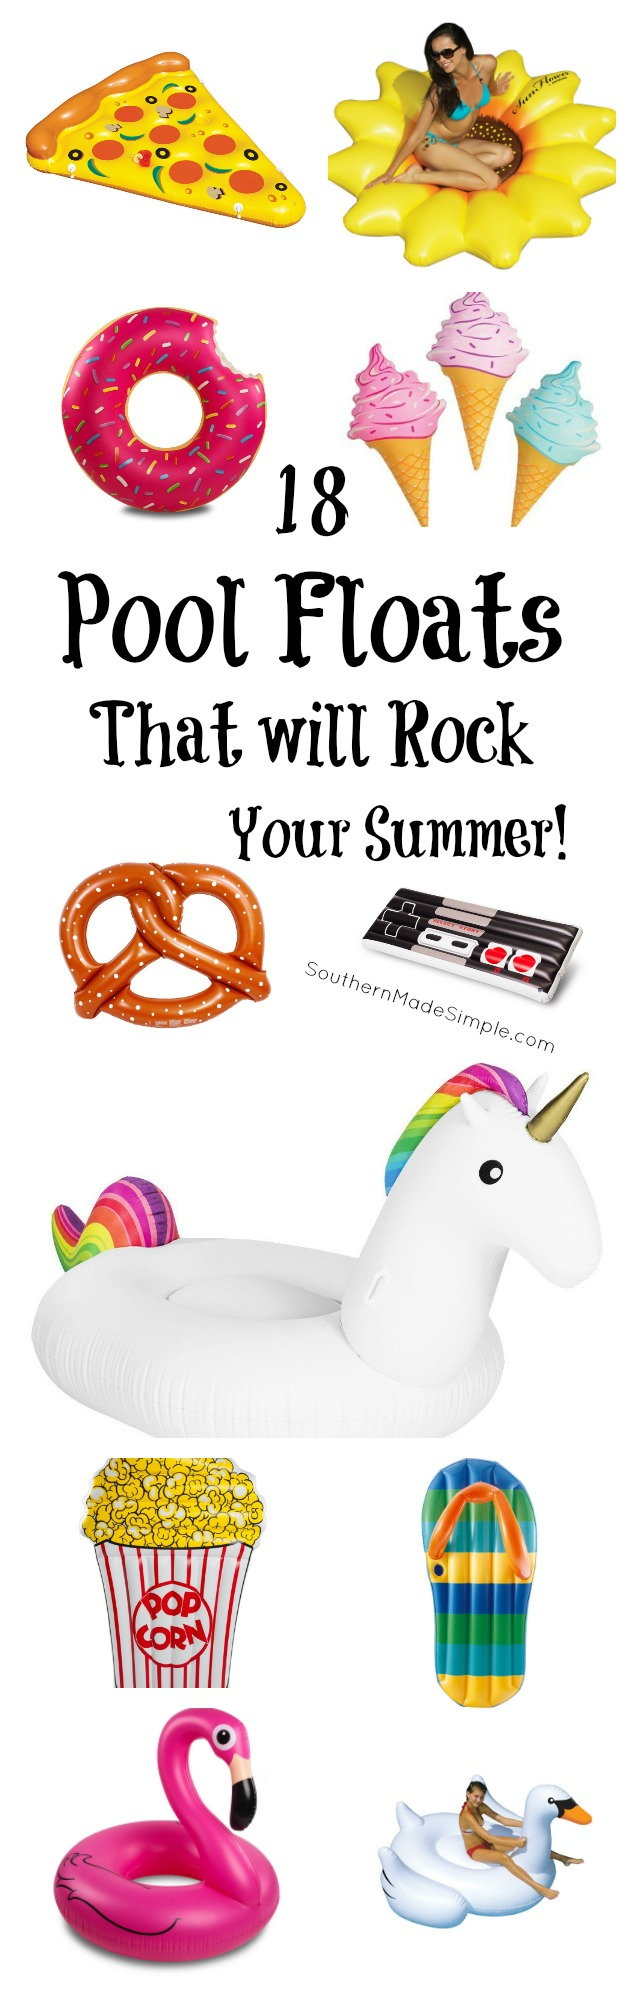 Pool Floats that will ROCK your summer! And they're all available on Amazon!